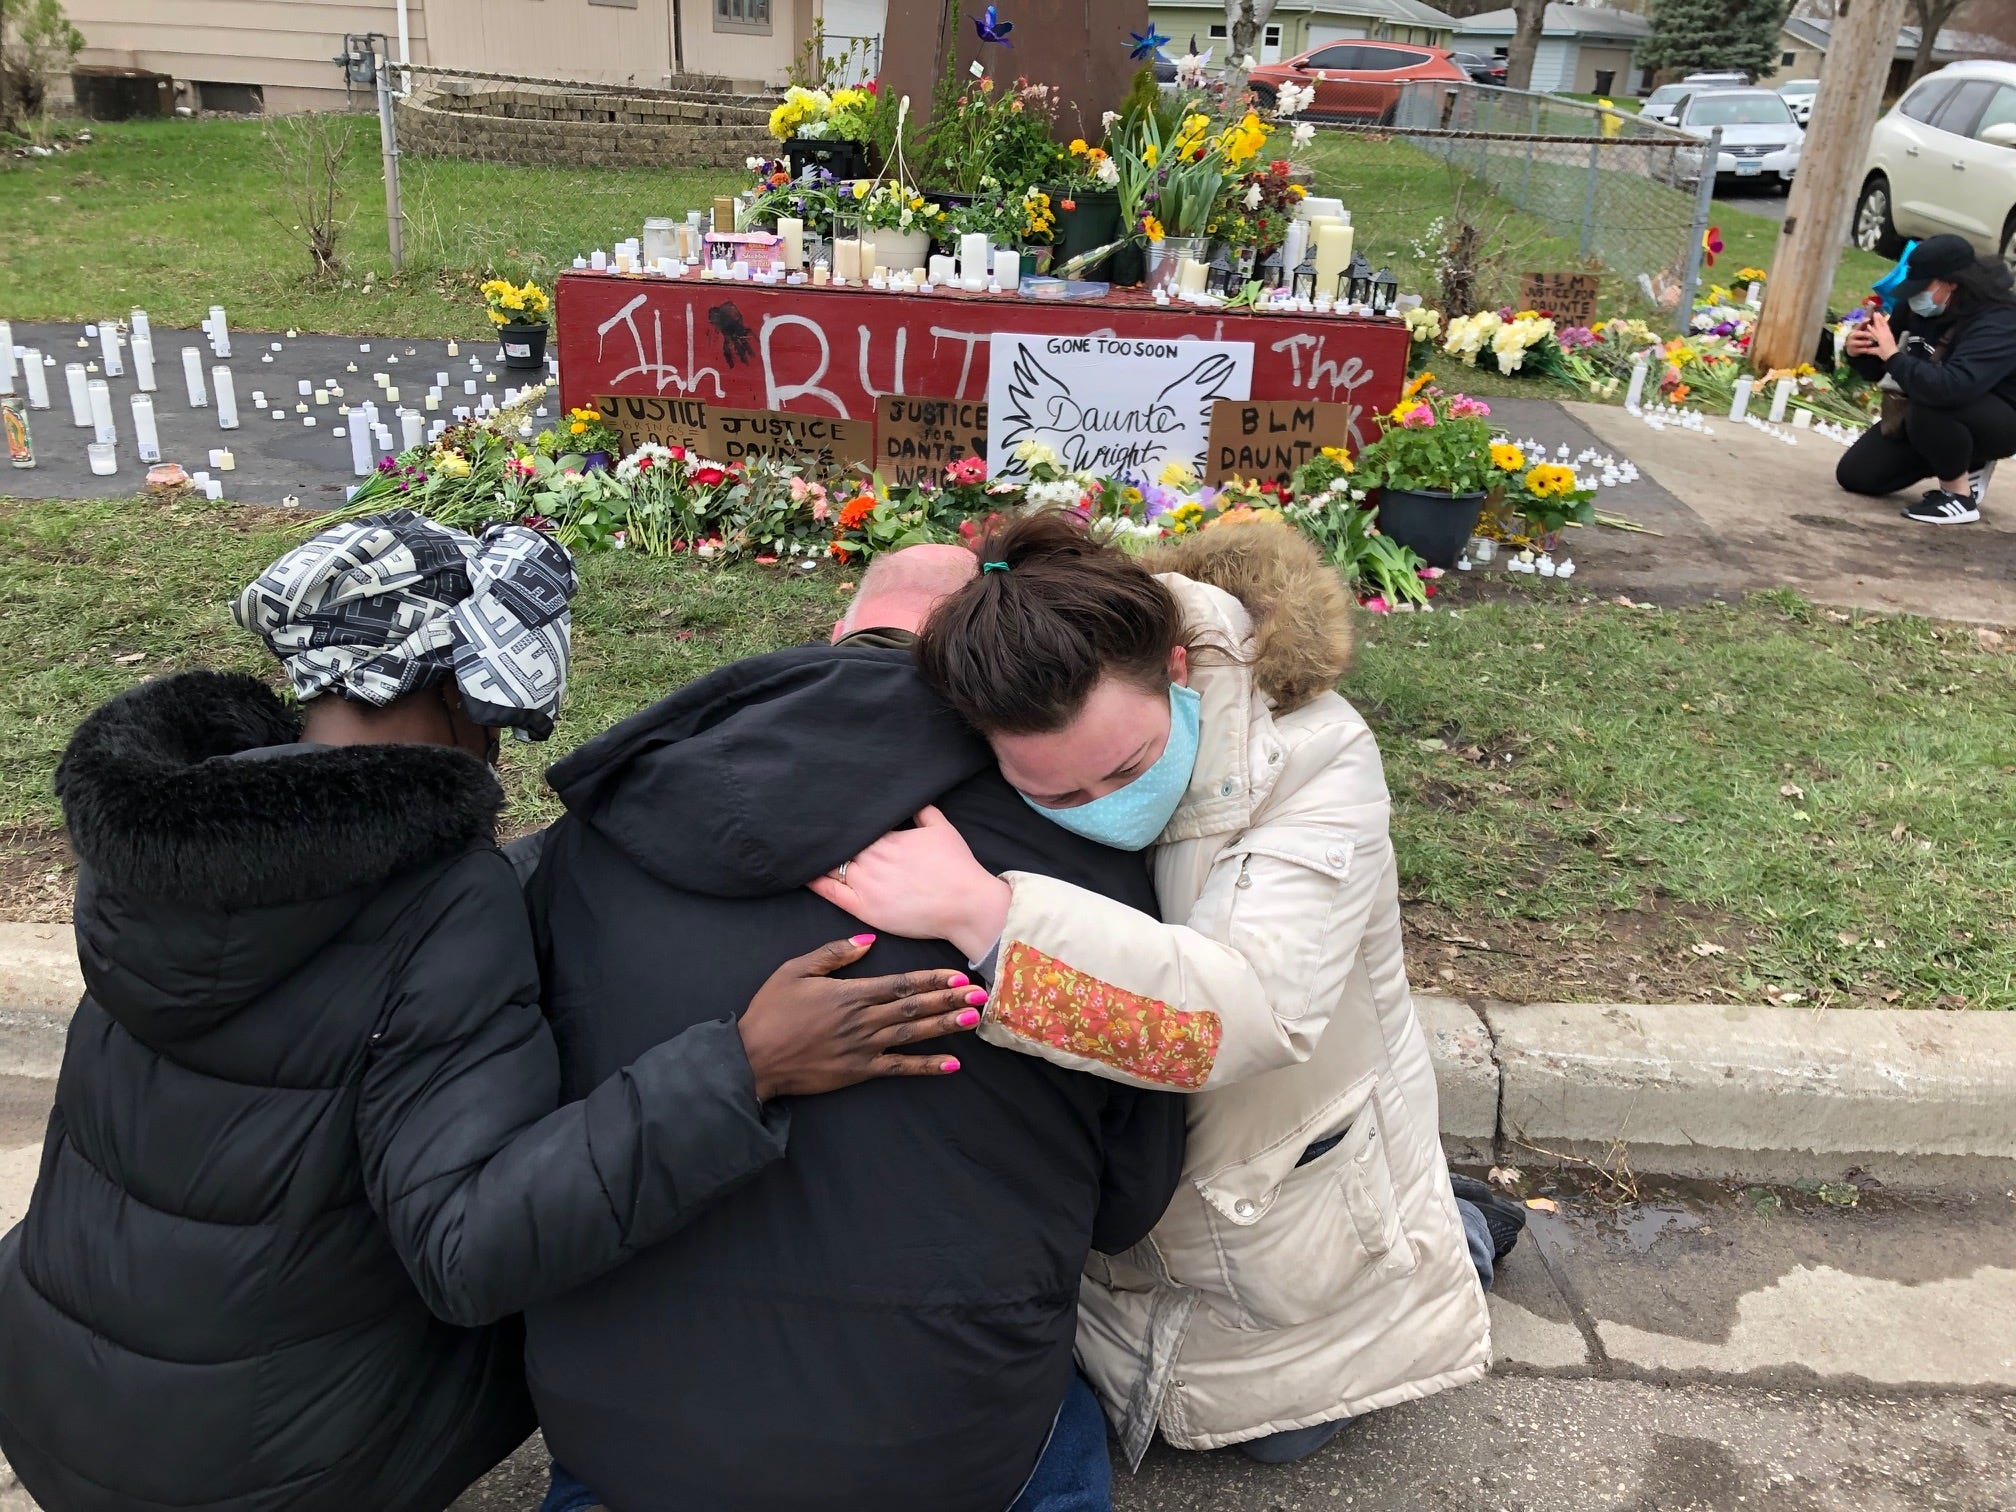 Daunte Wright shooting: Protesters clash with police, call for justice; Brooklyn Center community and nation pay respects